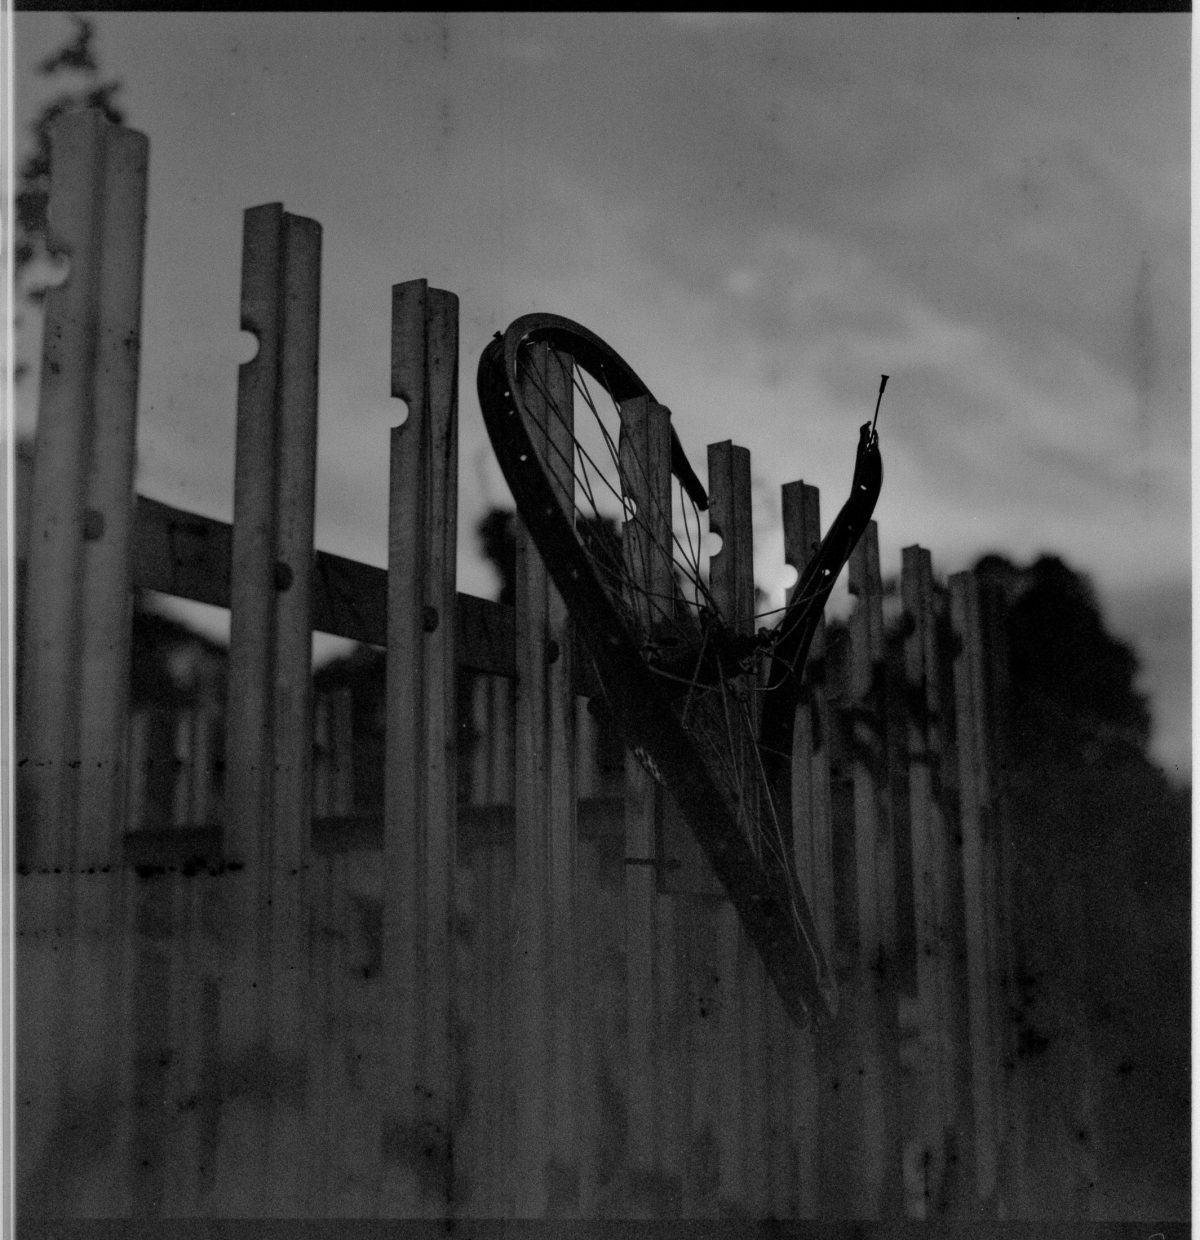 A smashed bicycle wheel hangs on a metal fence.